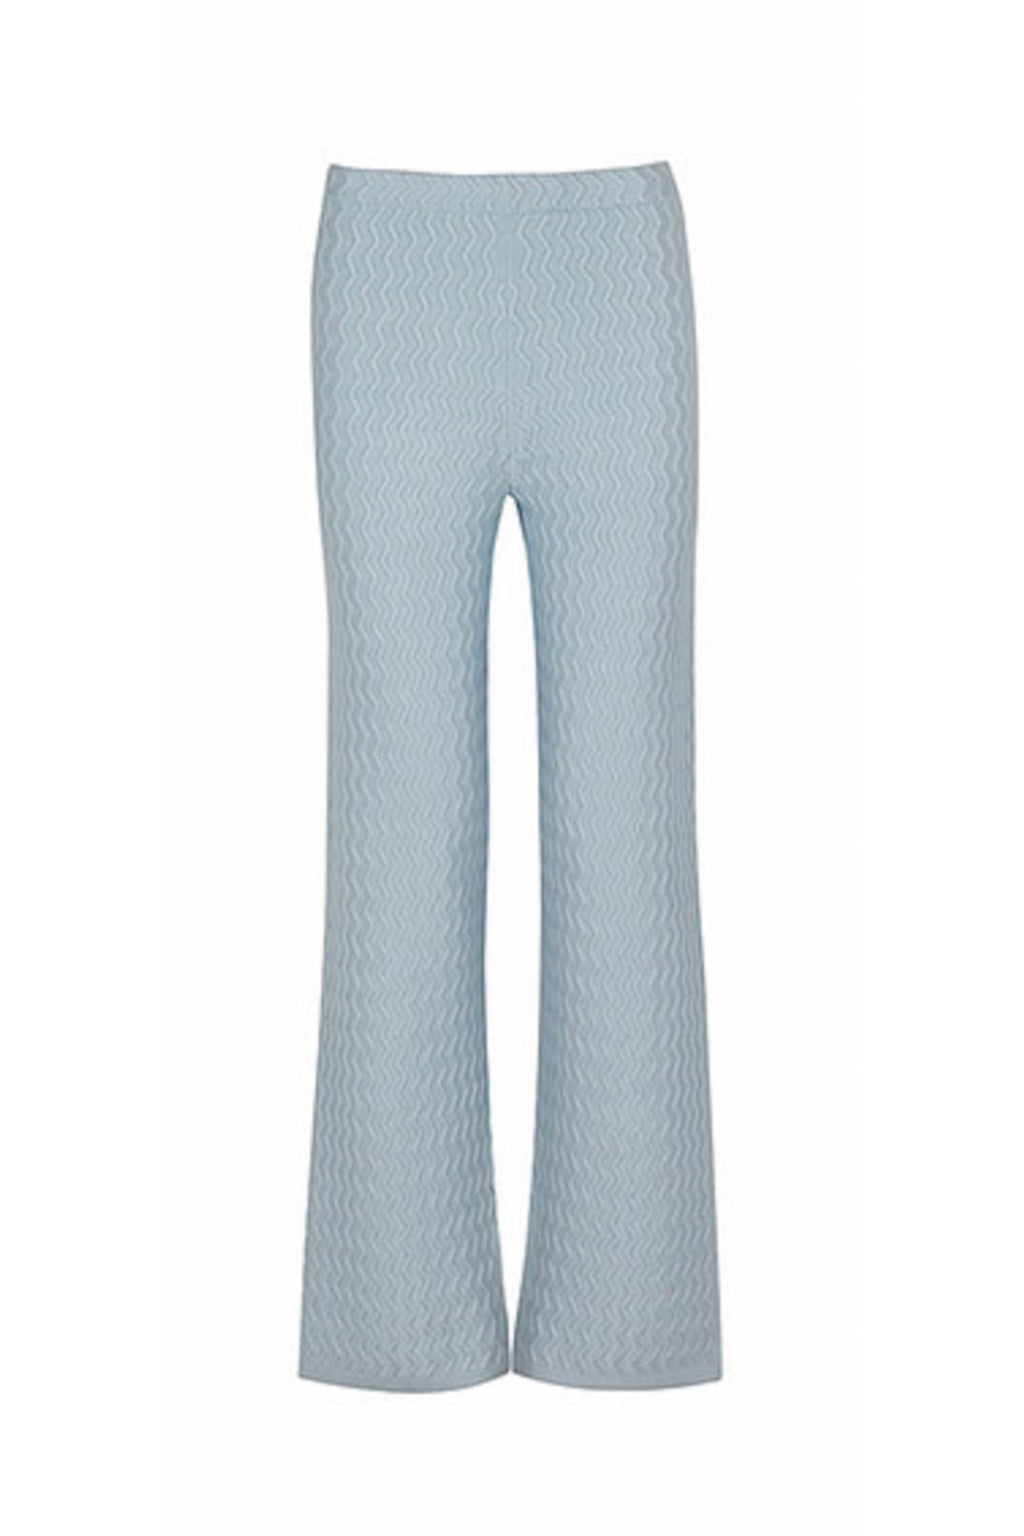 PACIFIC PANTS - Rib Knit Pants